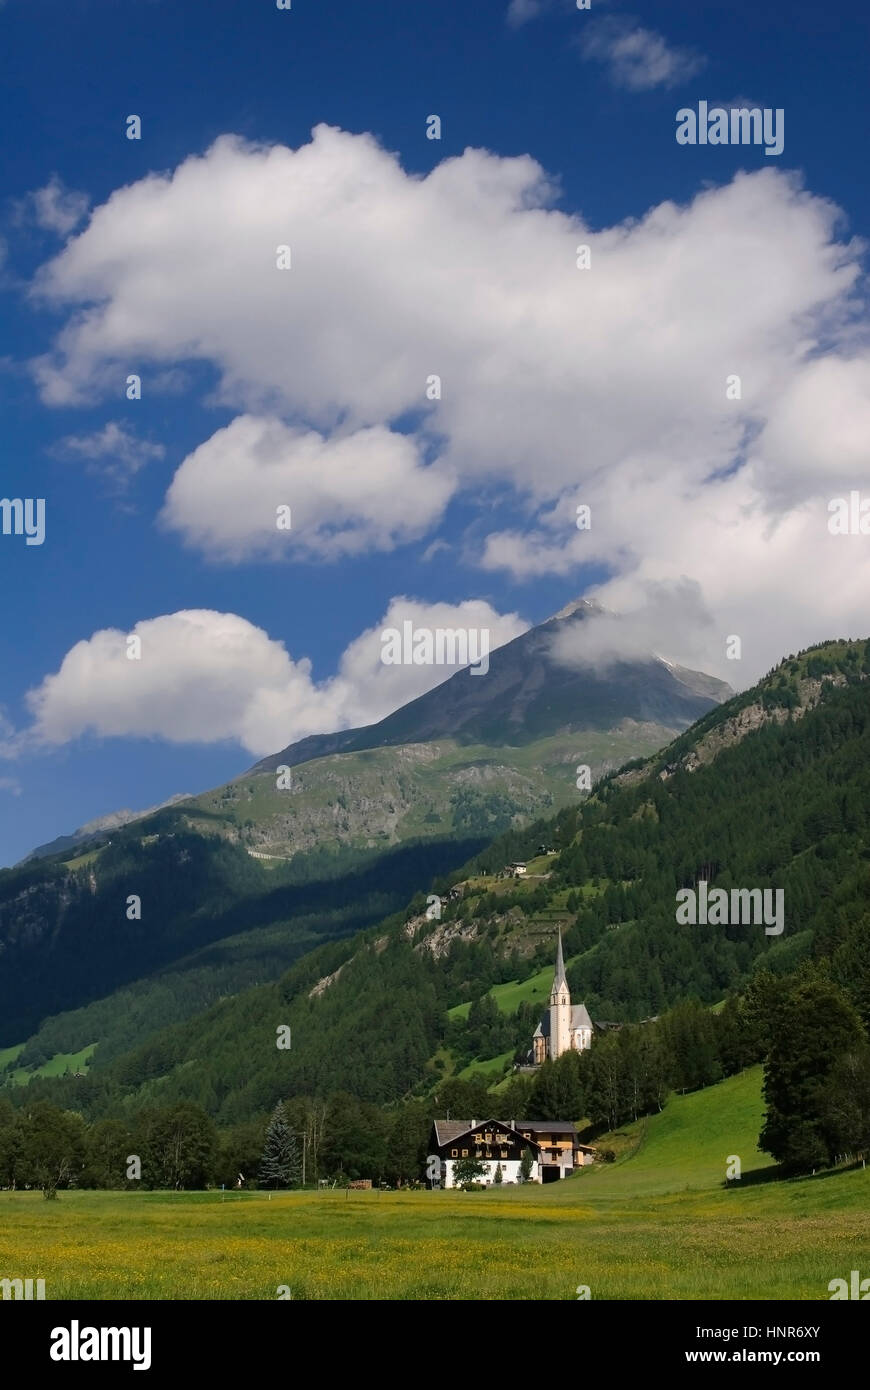 National park high tanners, saint's blood, Austria, Nationalpark Hohe Tauern, Heiligenblut, Oesterreich - Stock Image